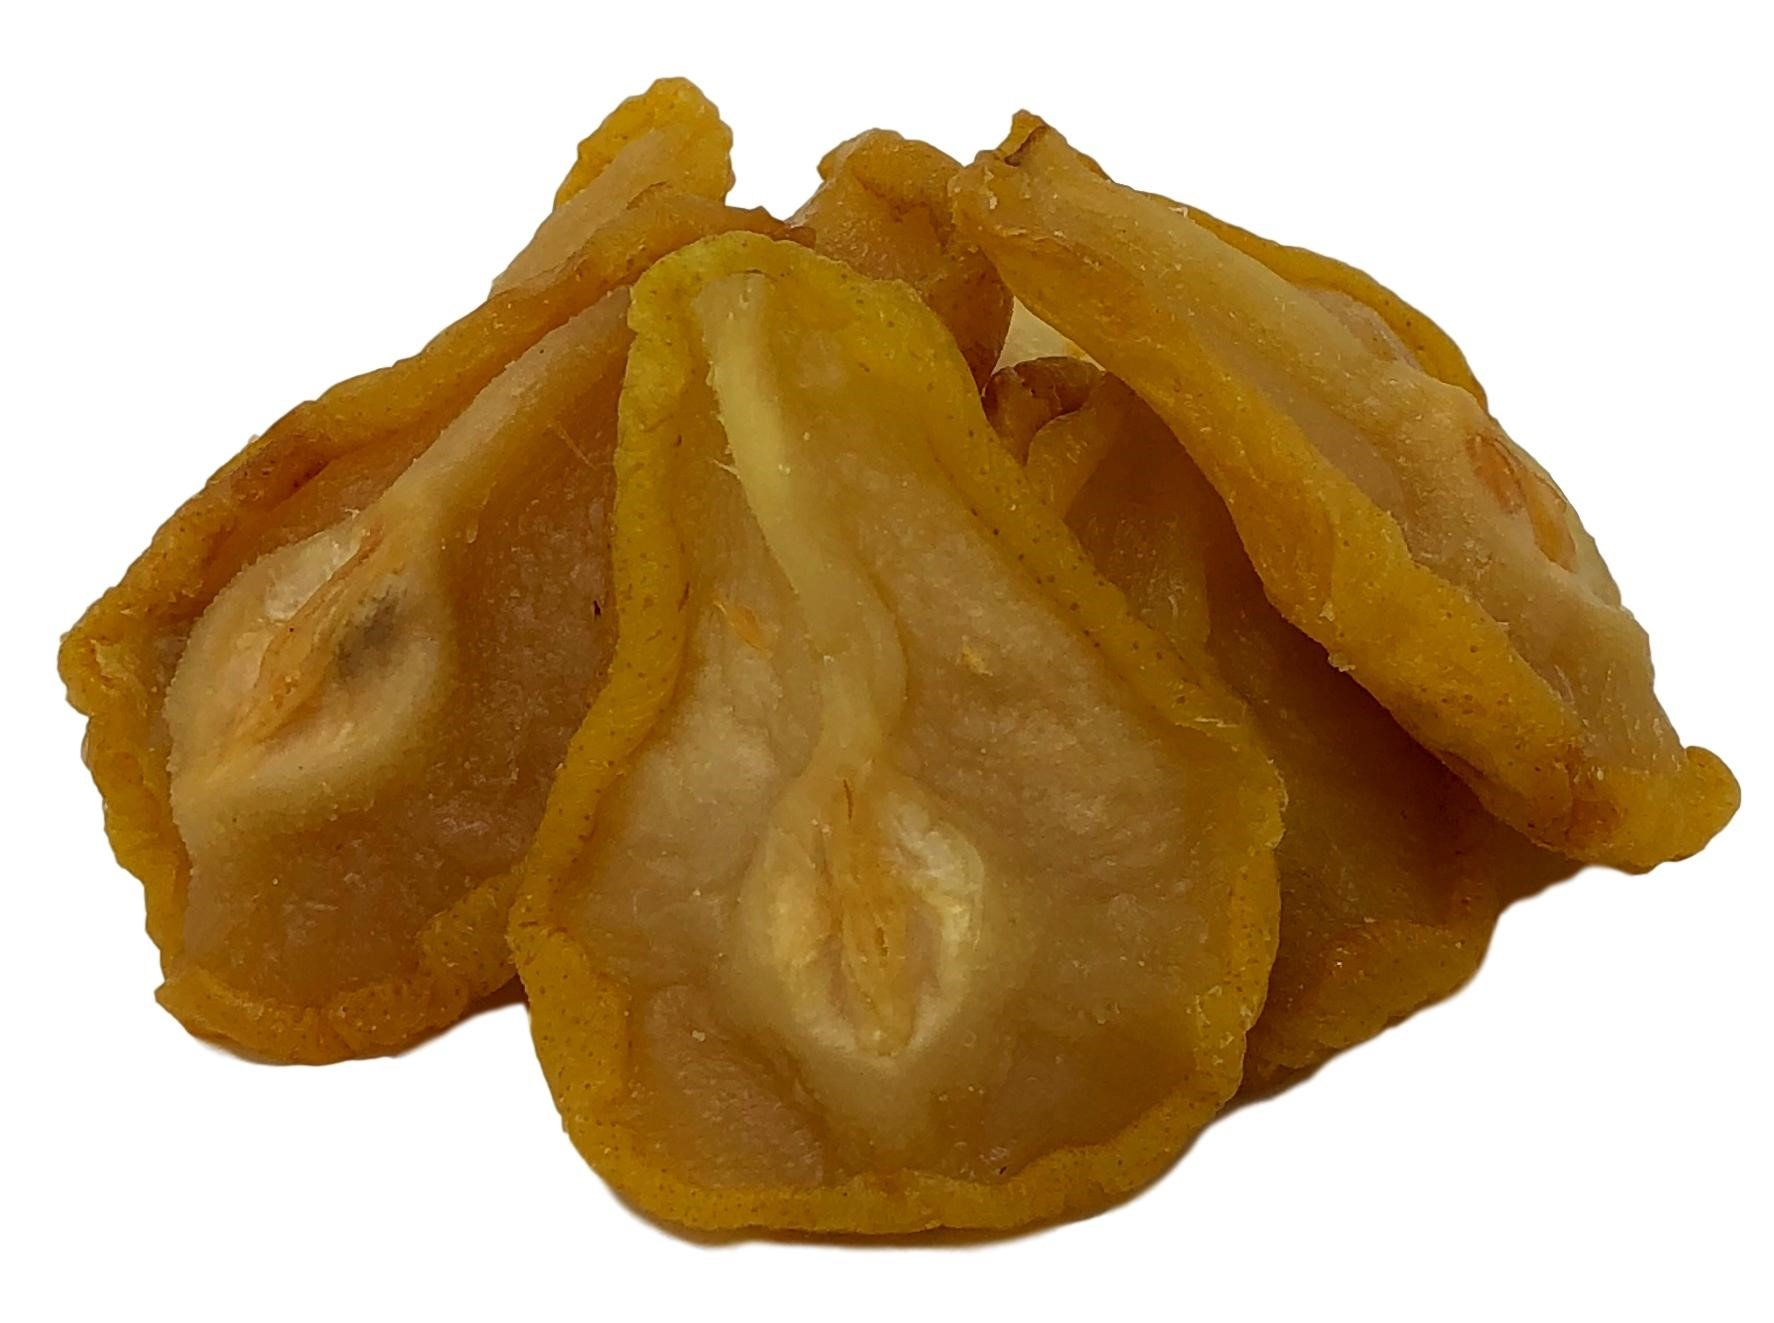 NUTS U.S. - Dried Pears, Plump, Juicy, No Added Sugar, Natural!!! (2 LBS) by NUTS - U.S. - HEALTH IN EVERY BITE !